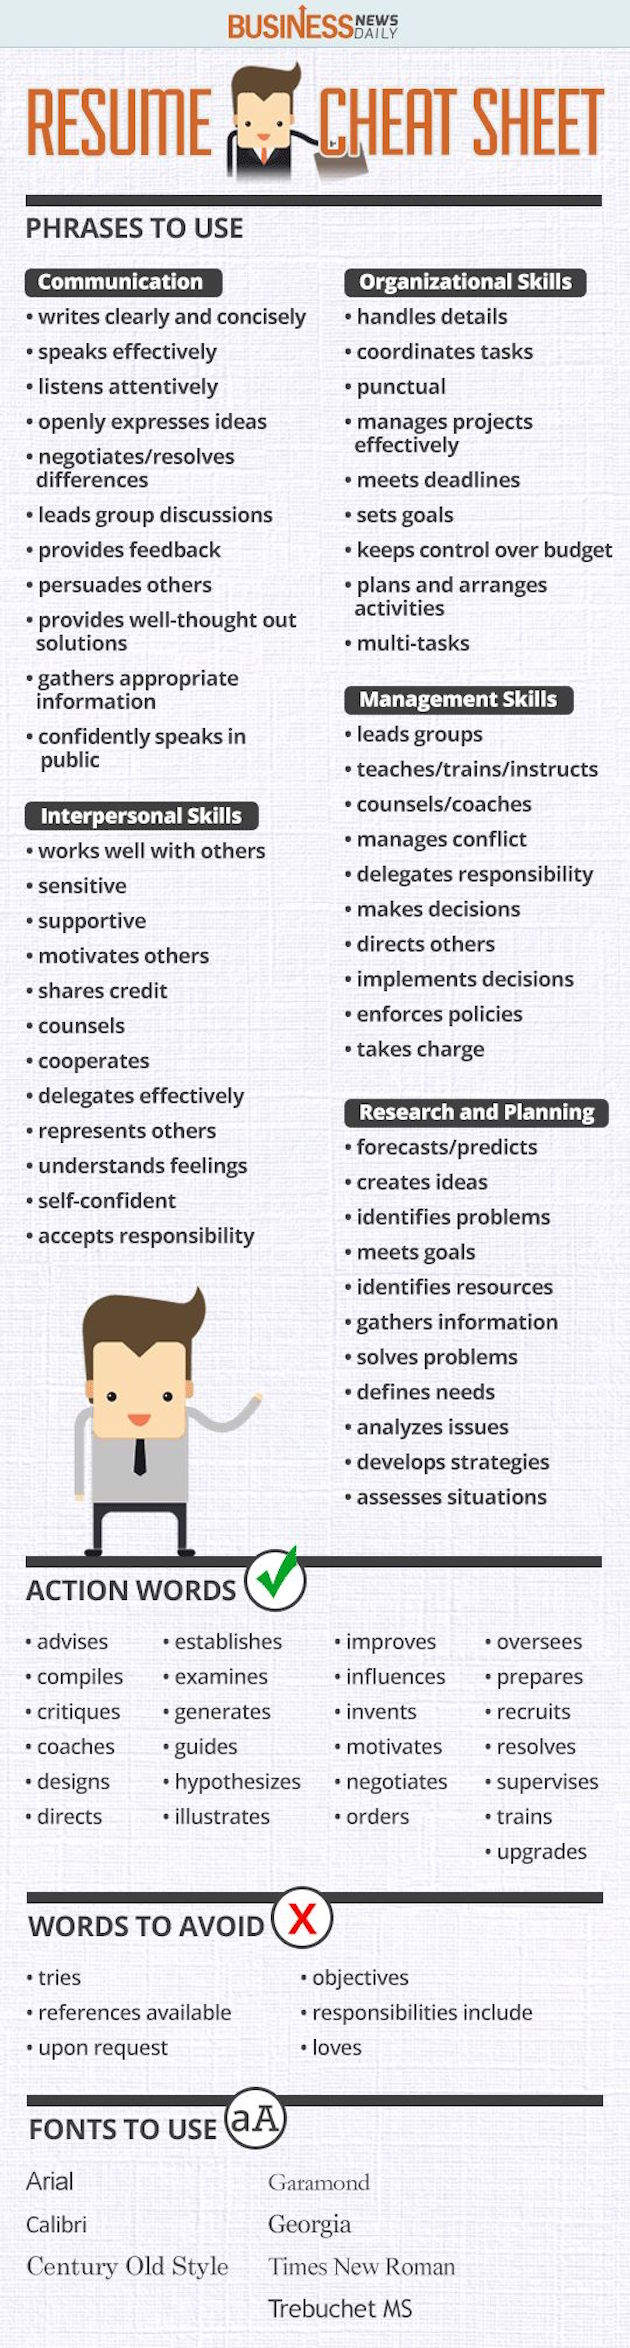 these are all the words you should use on a resumé to make your